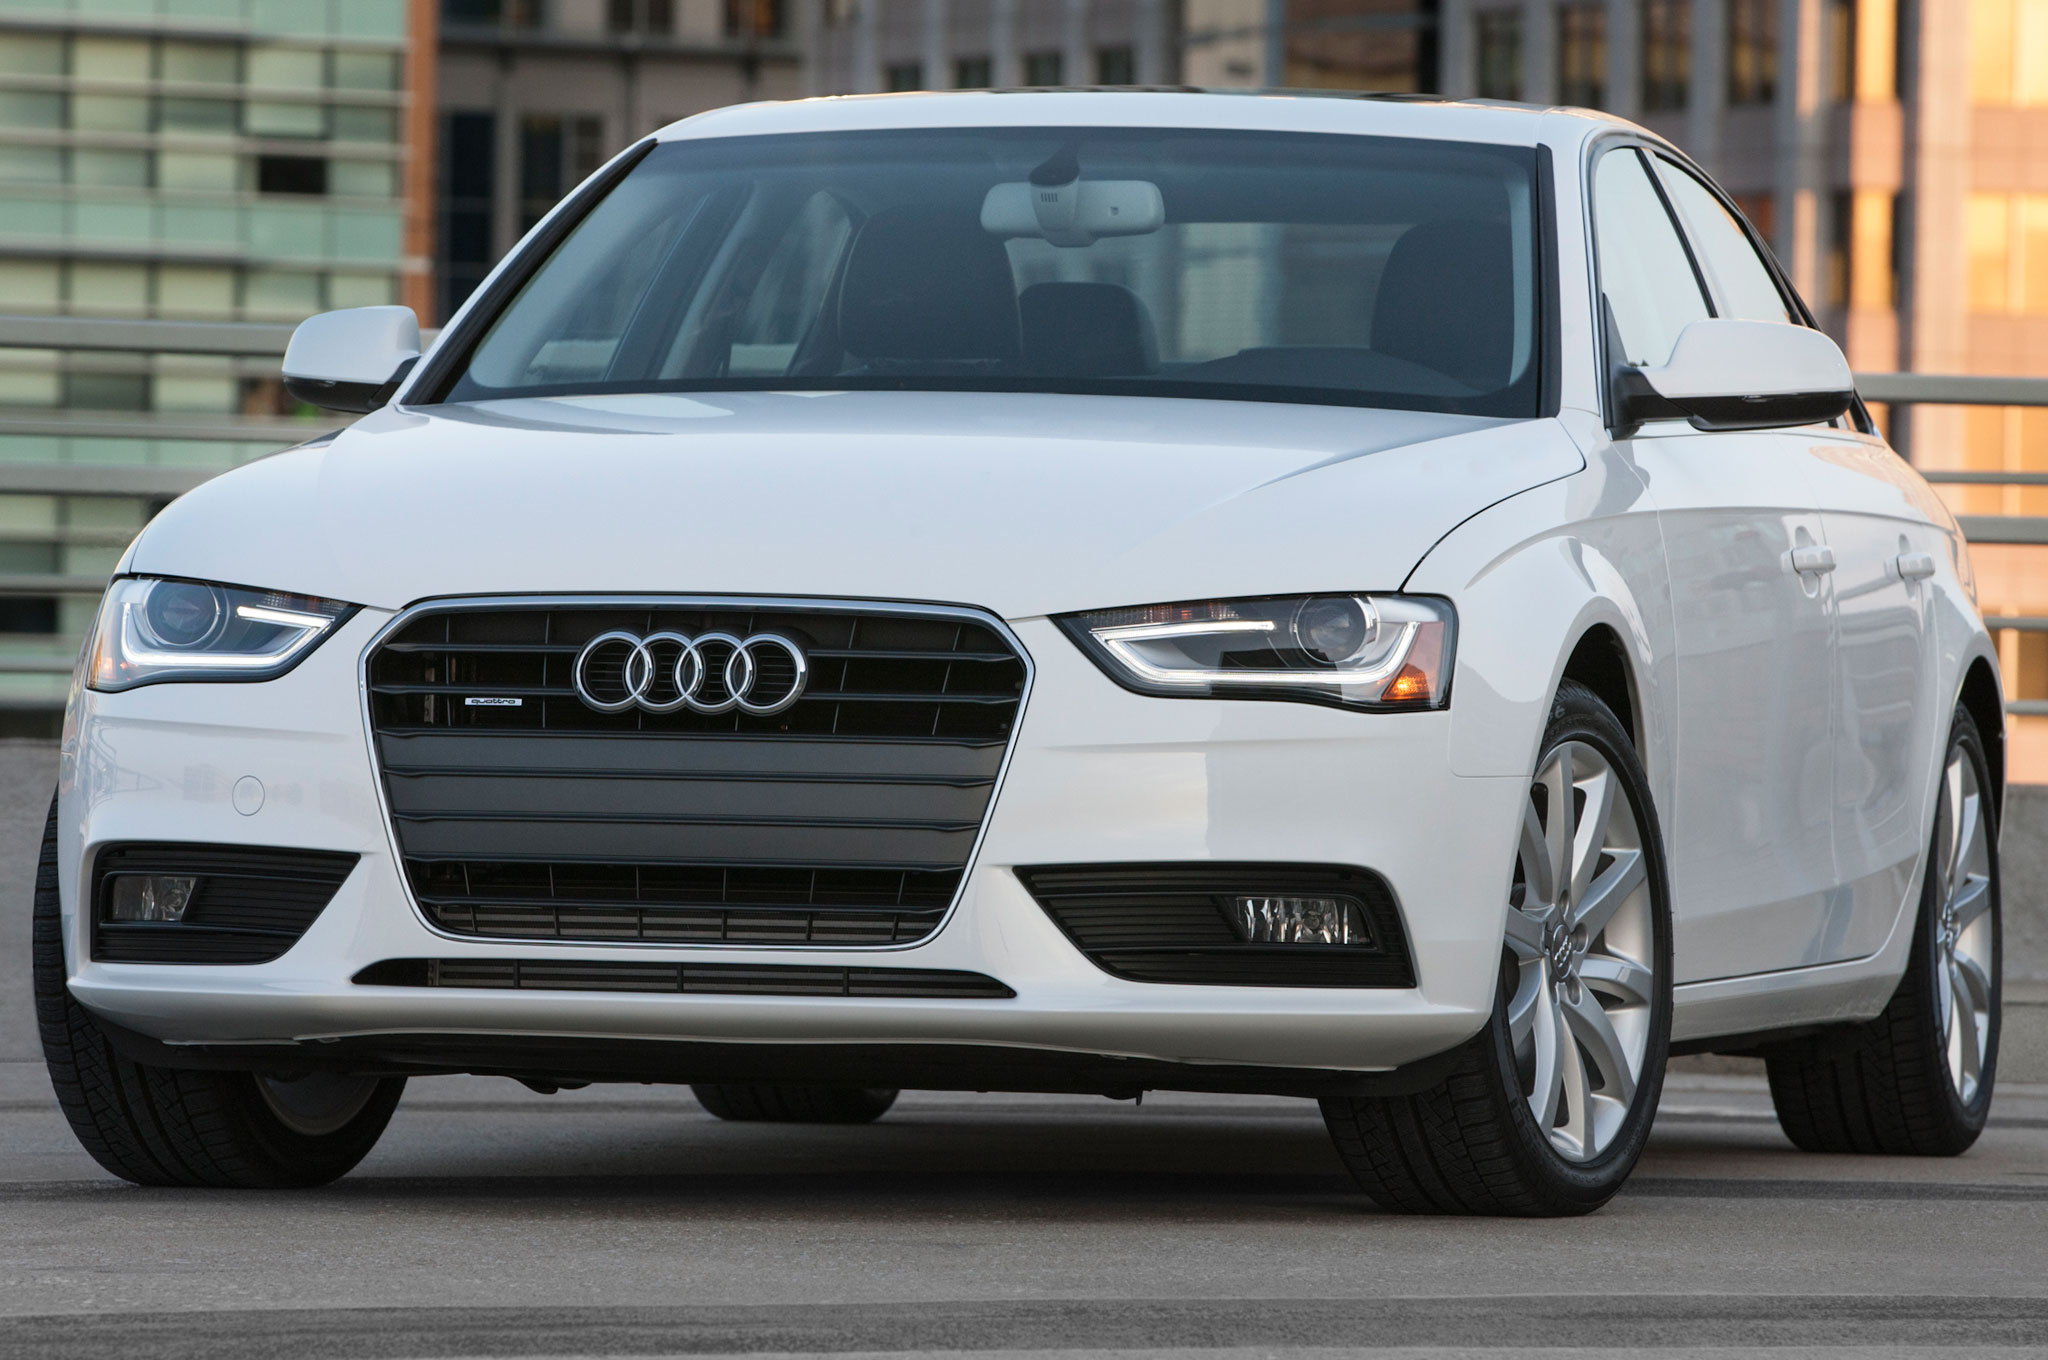 2014 Audi A4 A5 Q5 Make 220 Hp Get Price Bumps Motortrend